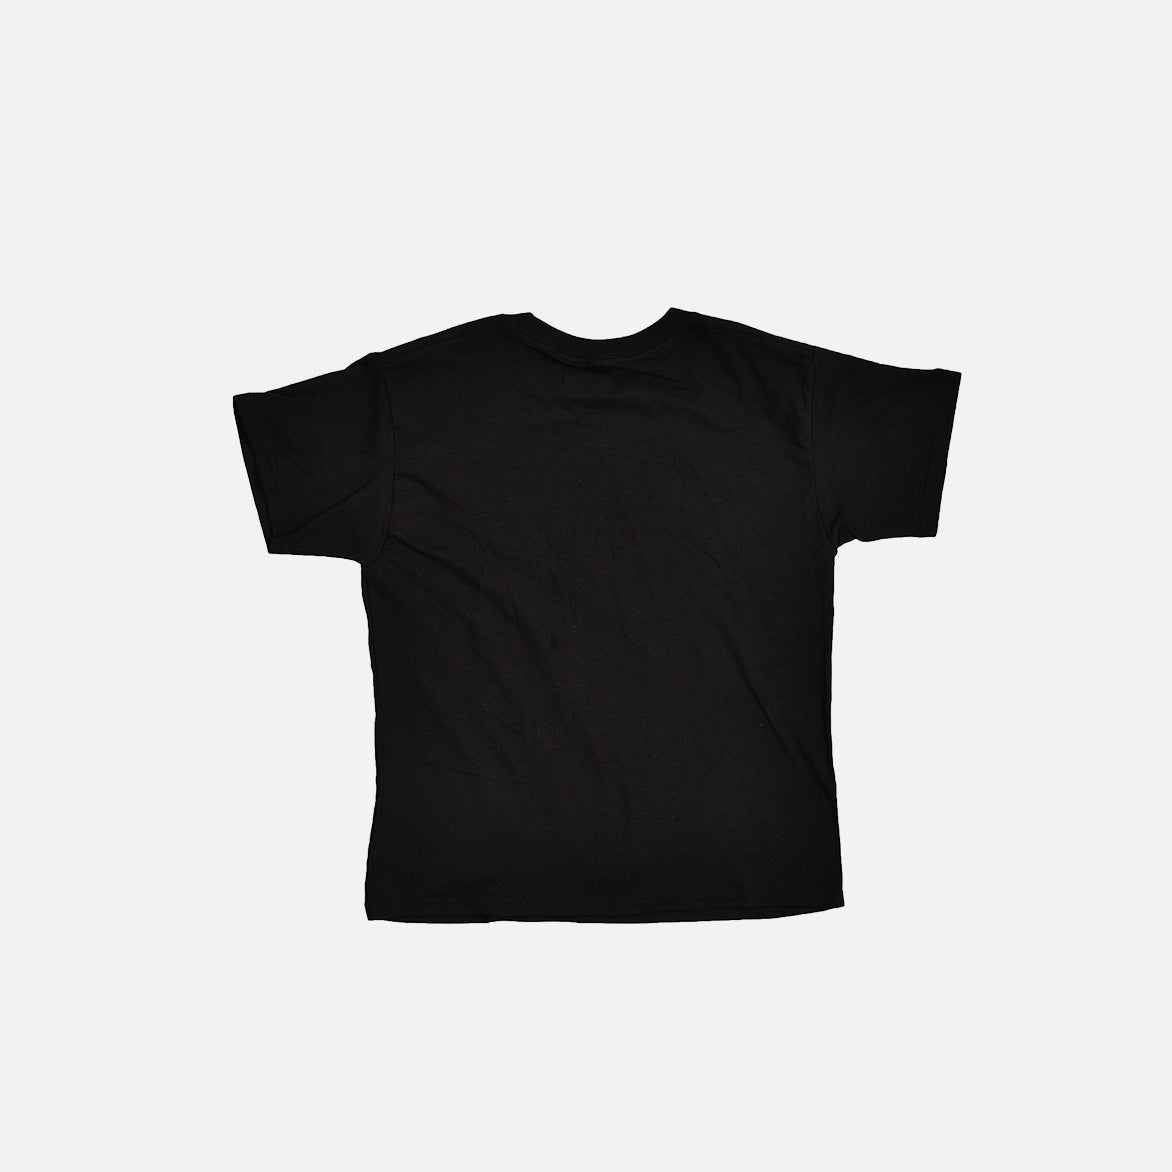 LAPSTONE KIDS UNITE TEE (YOUTH) - BLACK